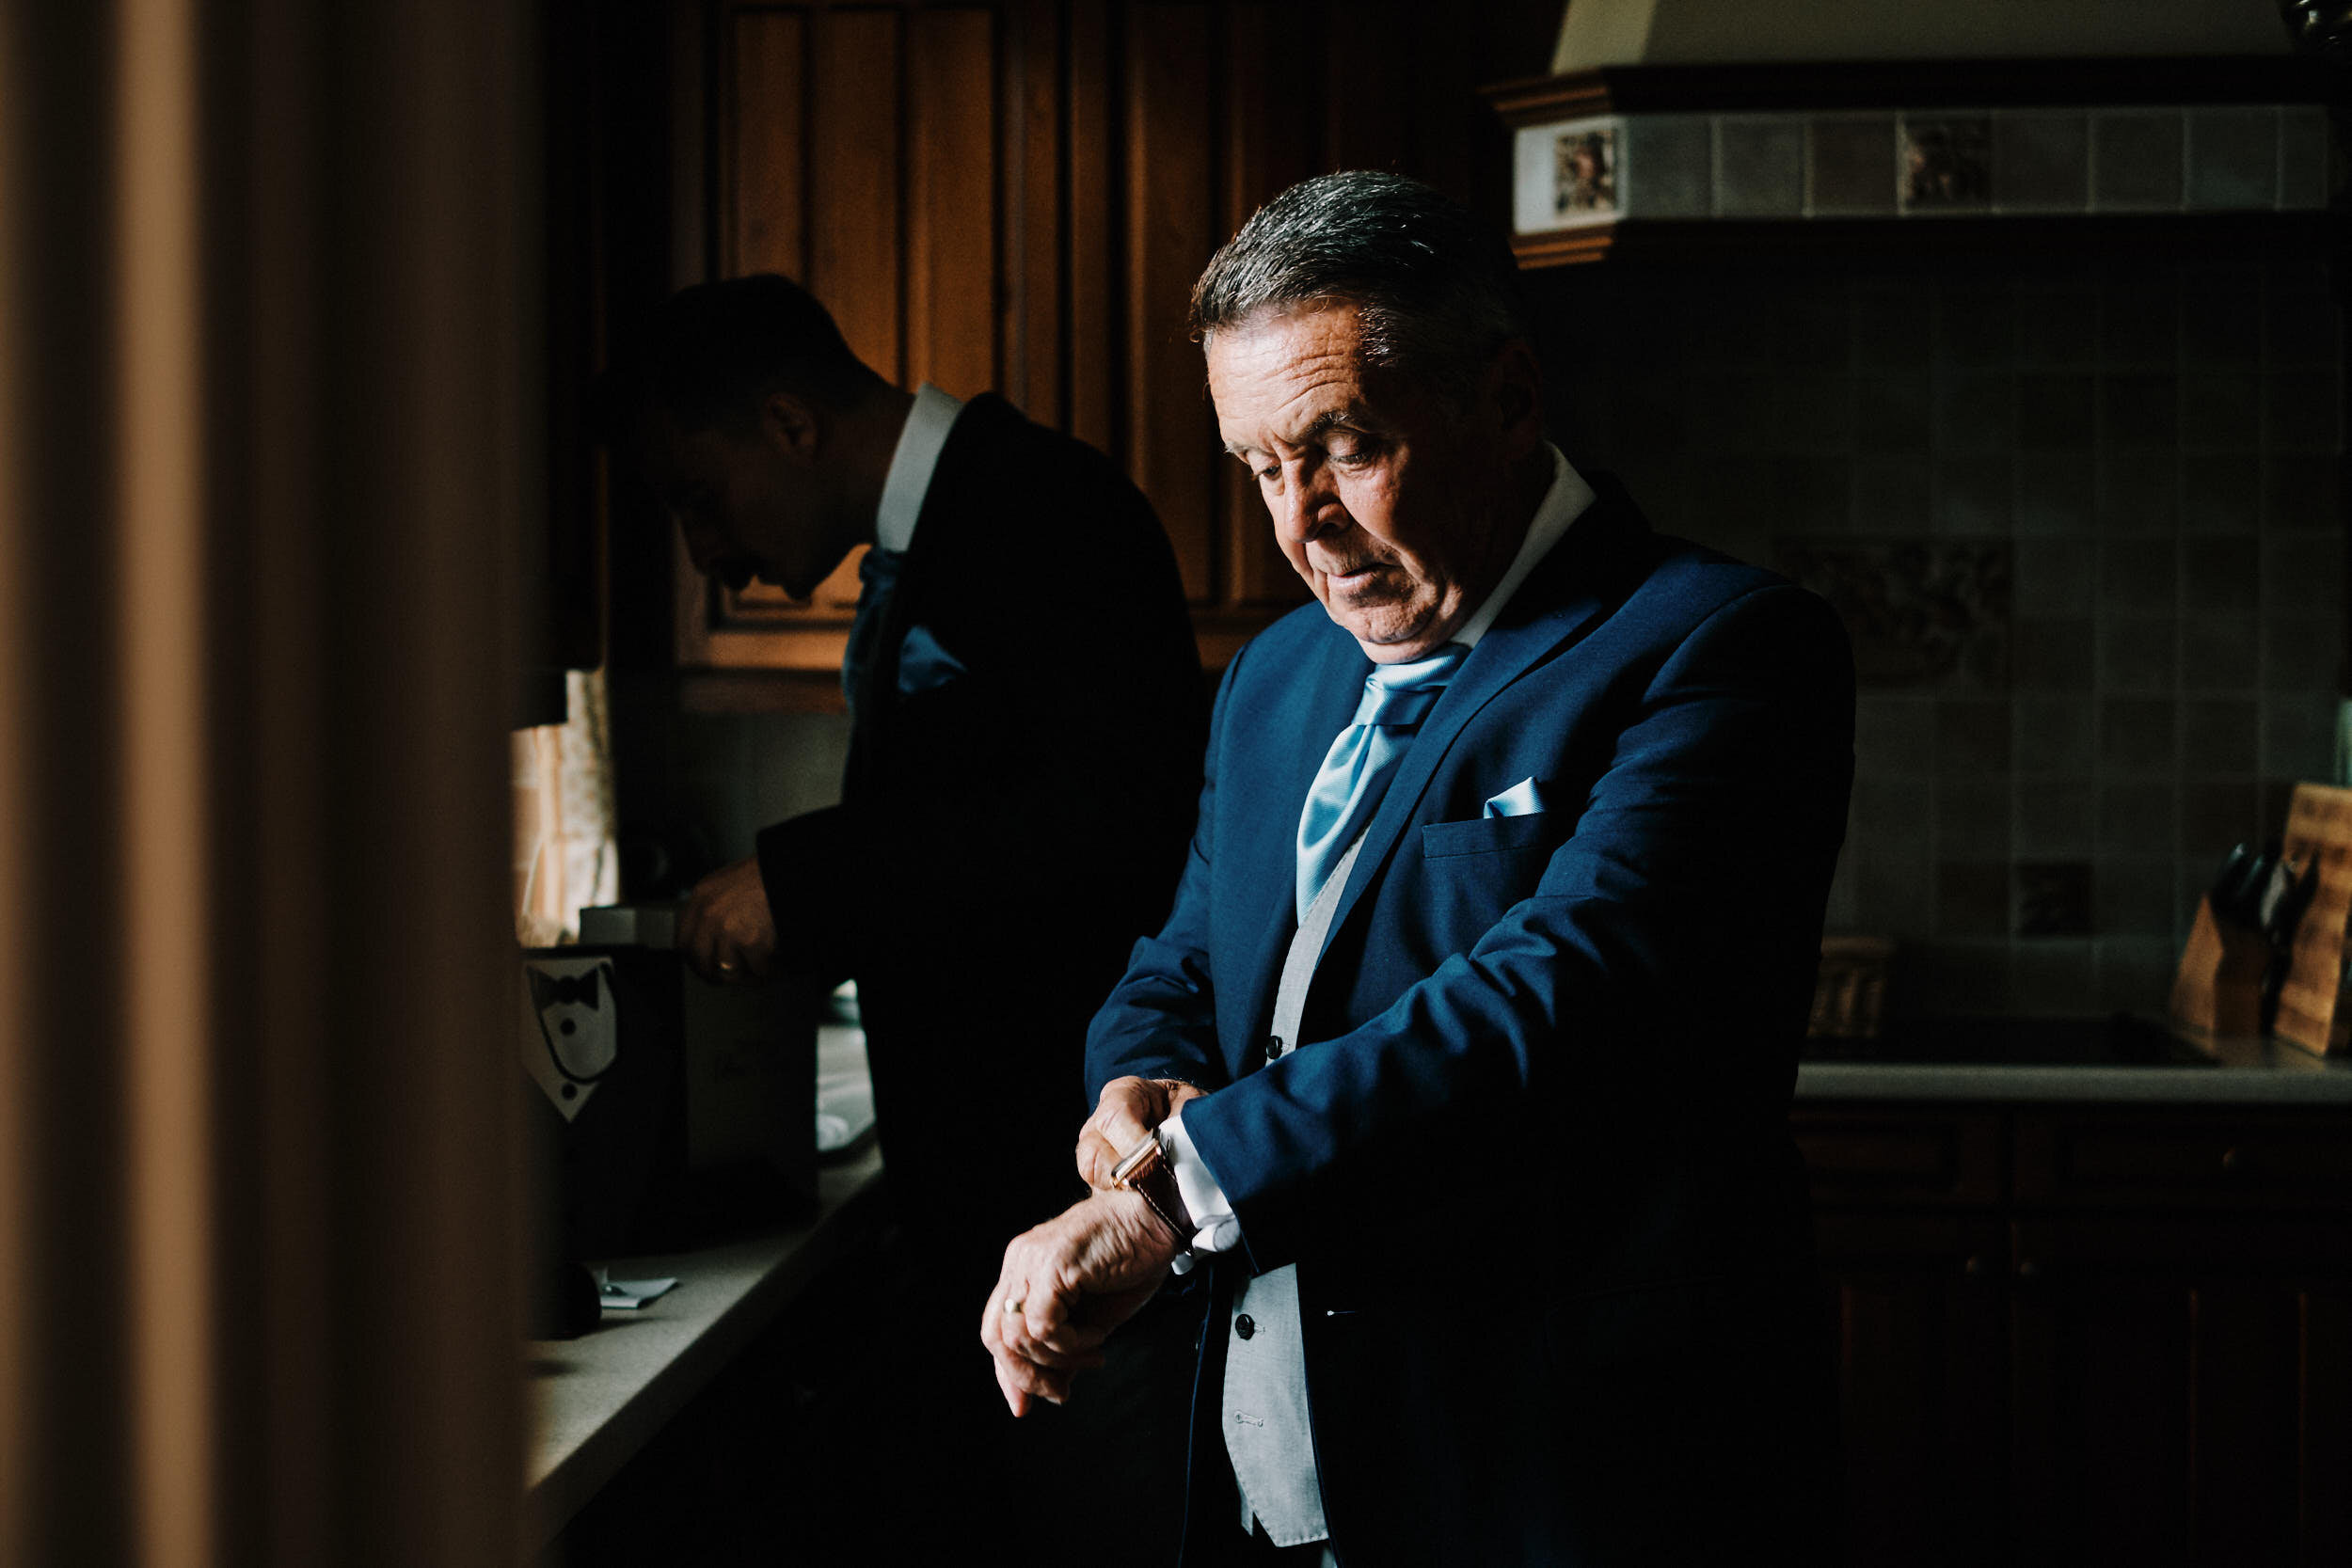 Father of the Groom getting ready documentary wedding photographer